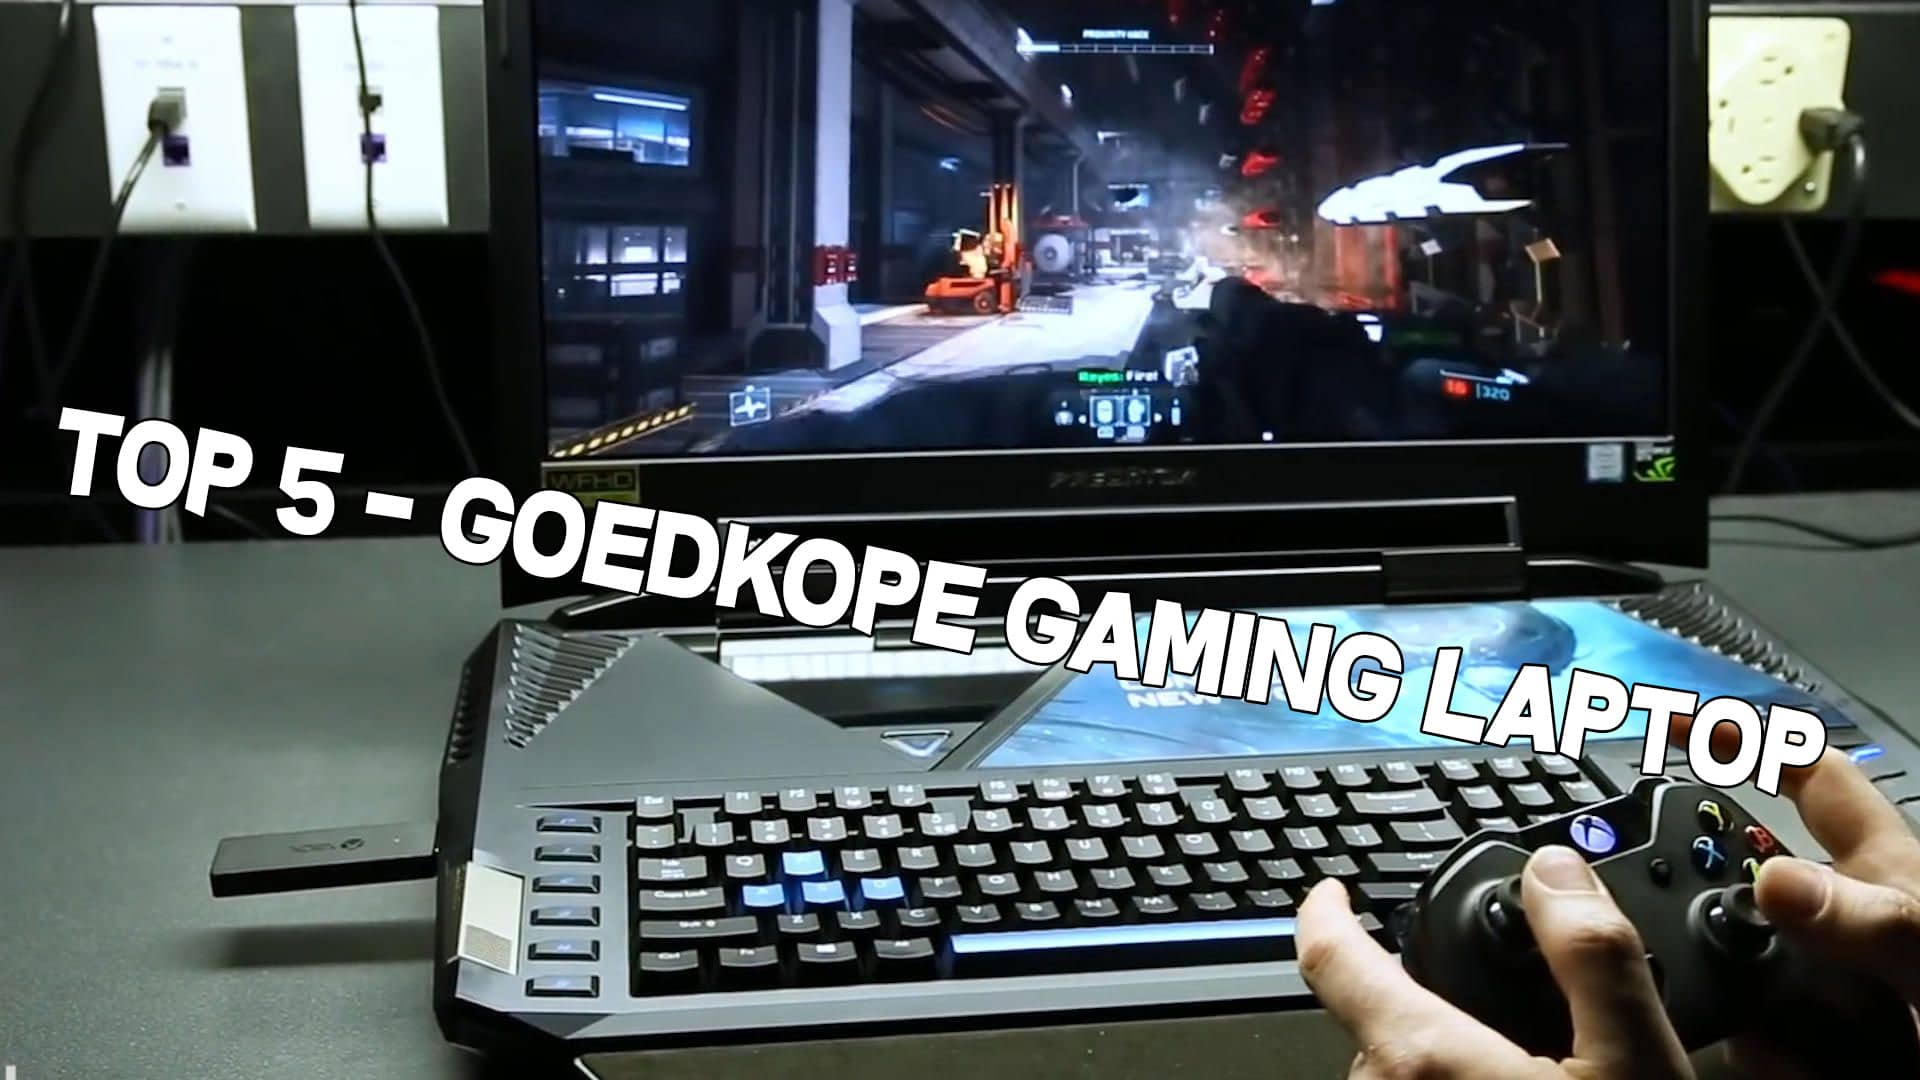 Goedkope gaming laptop - Top 5